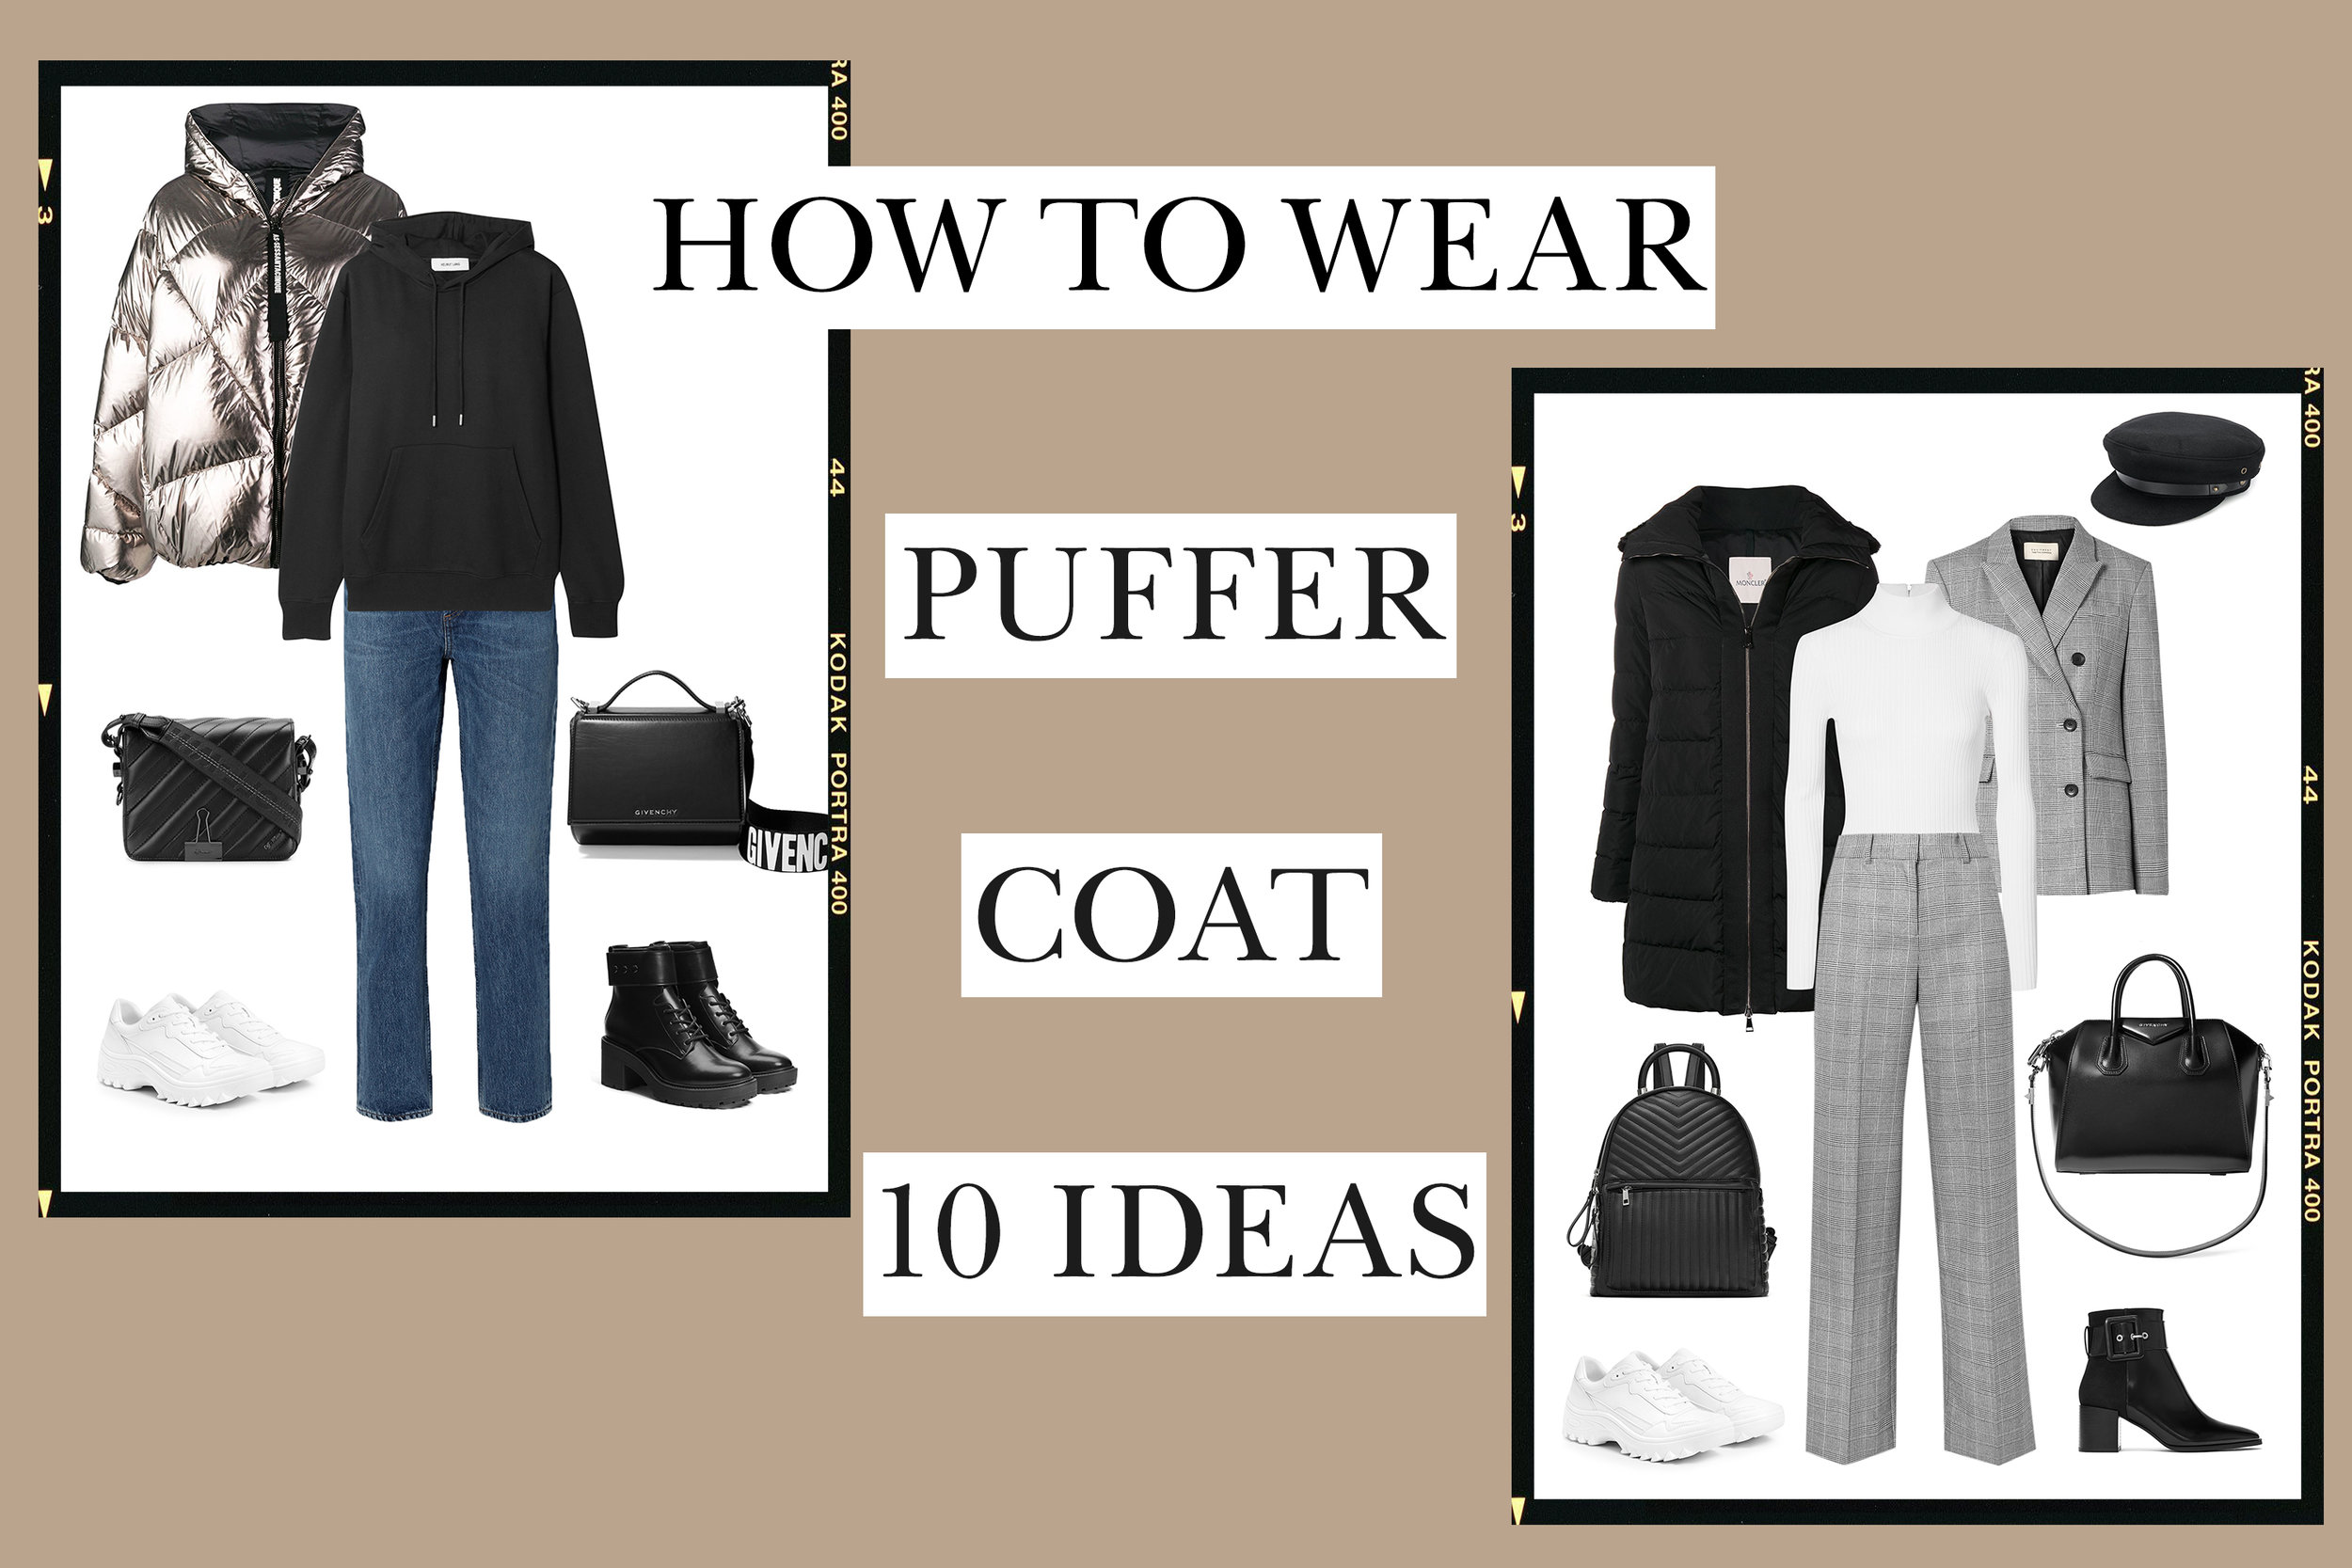 how-to-wear-puffer-coat.jpg